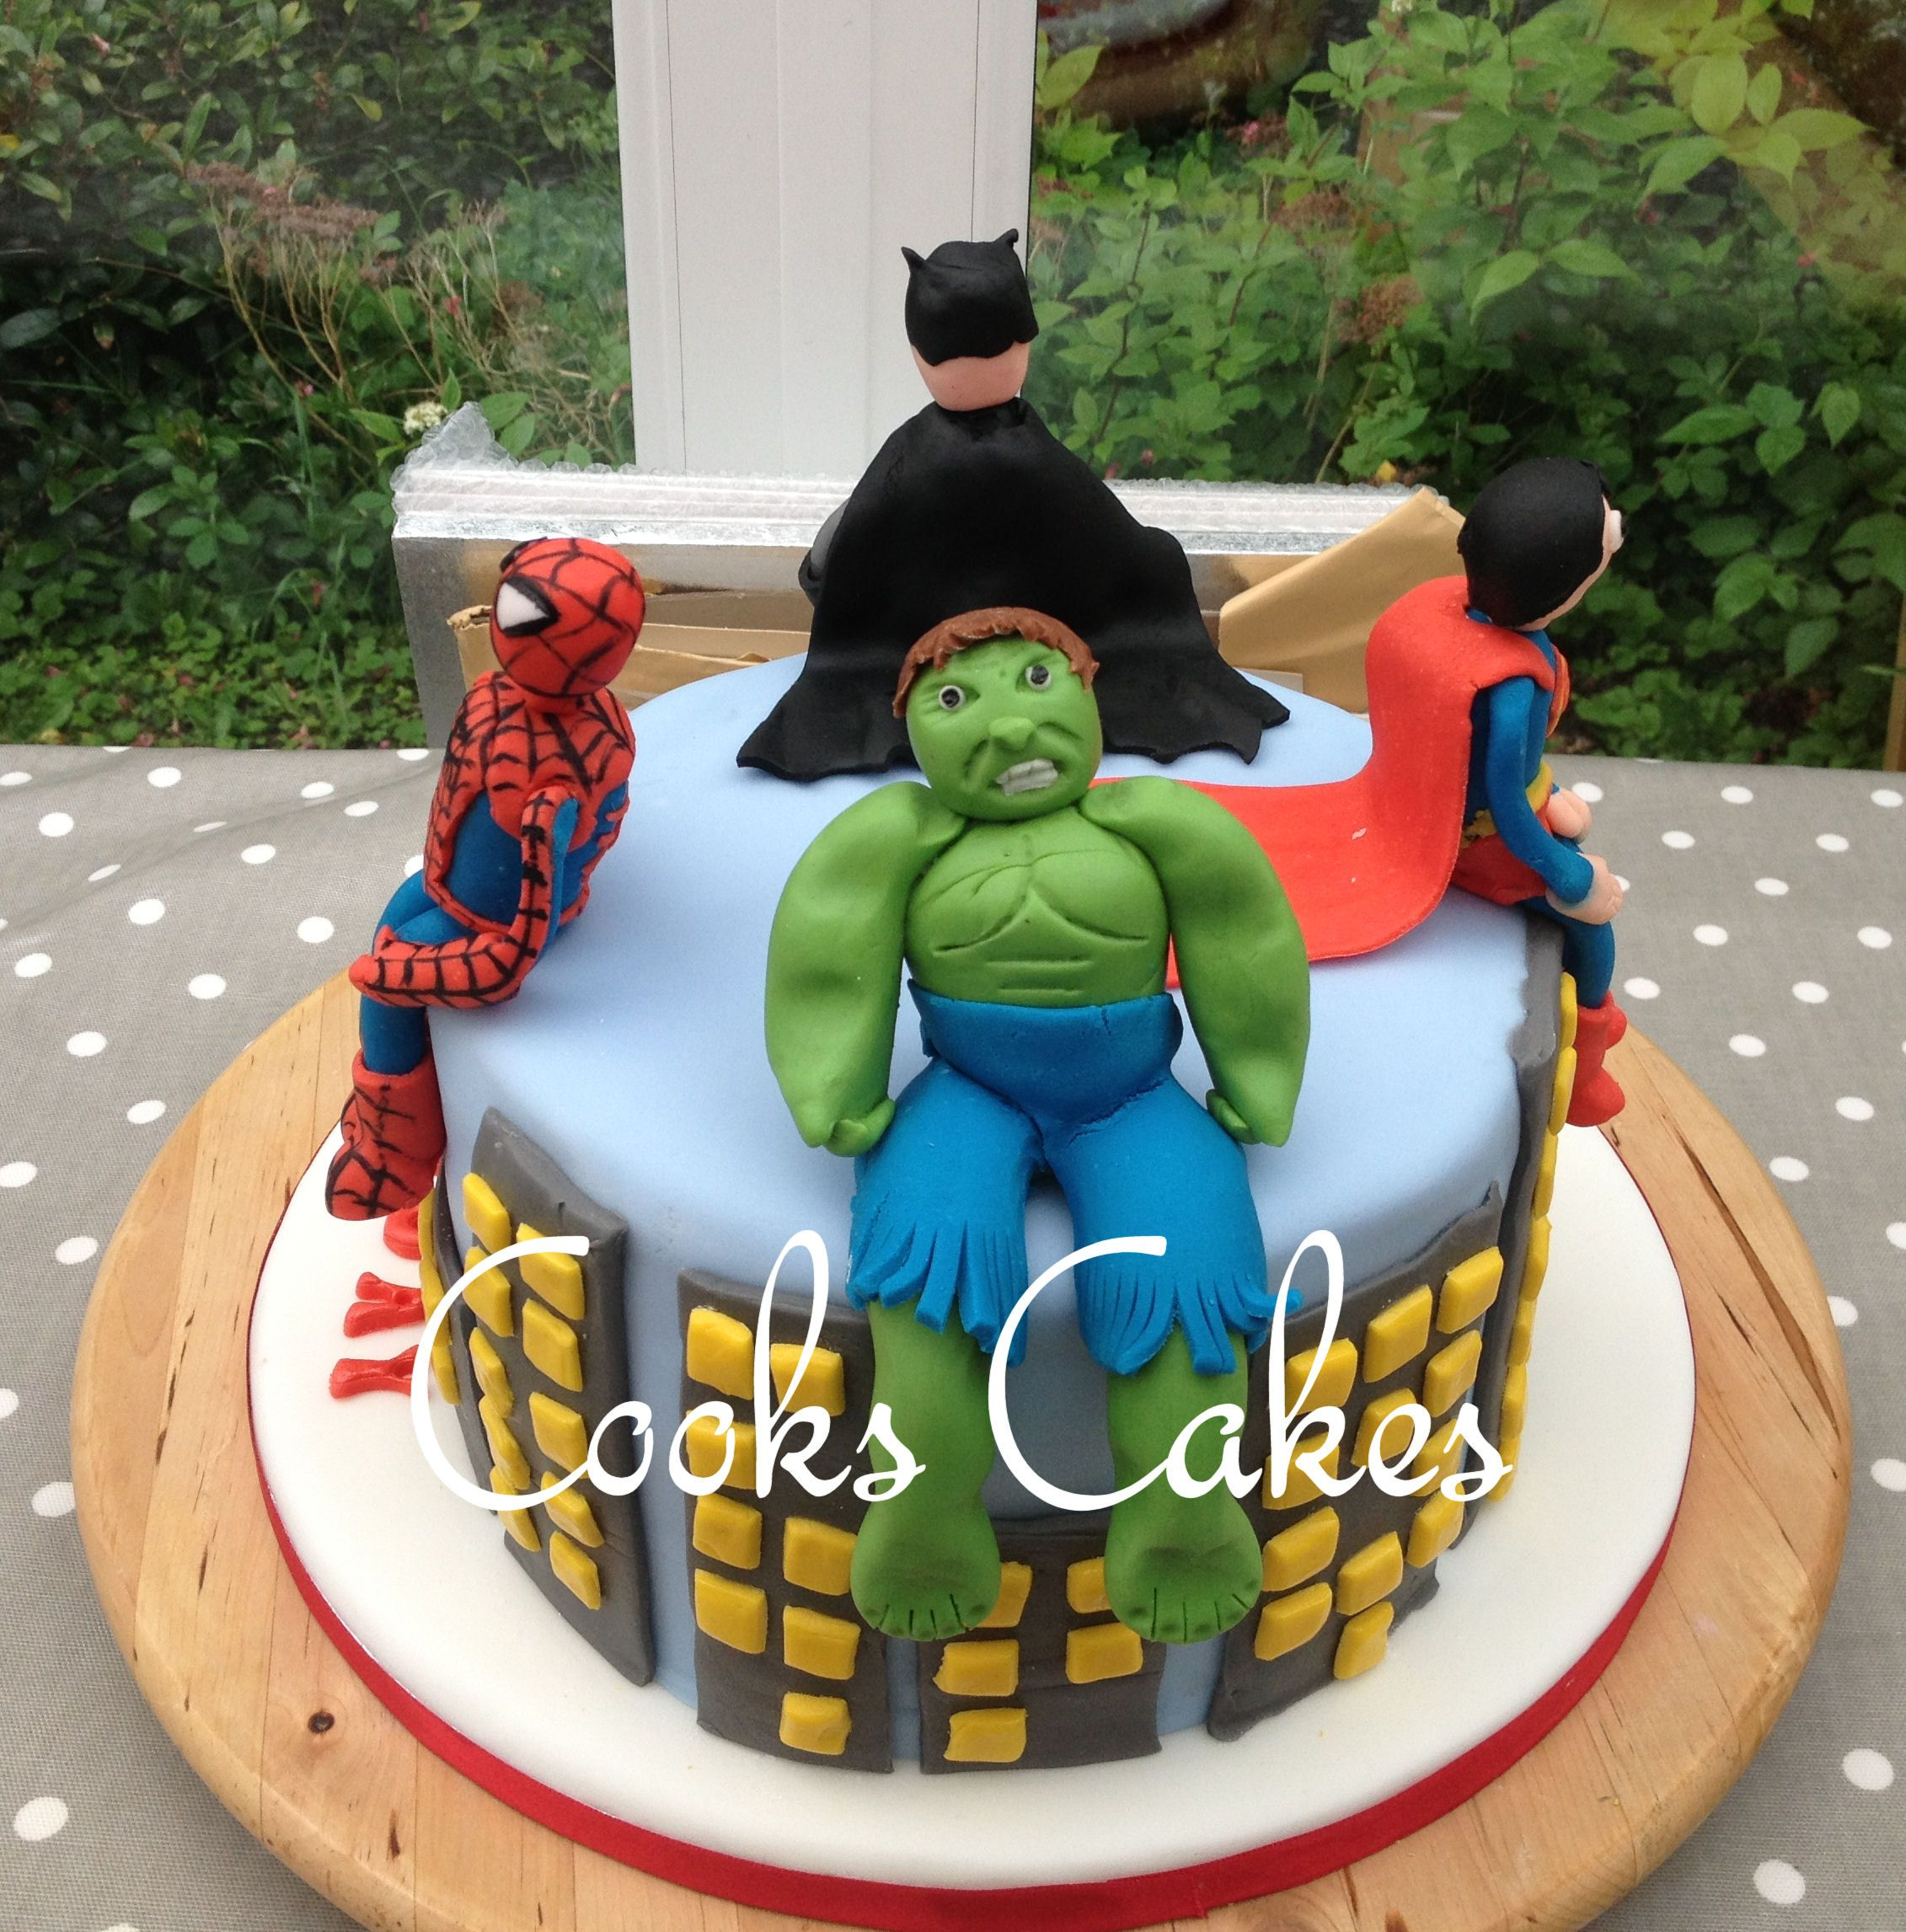 Sensational Birthday Cake For A 4 Year Old Boy Superheros Batman Spiderman Personalised Birthday Cards Veneteletsinfo